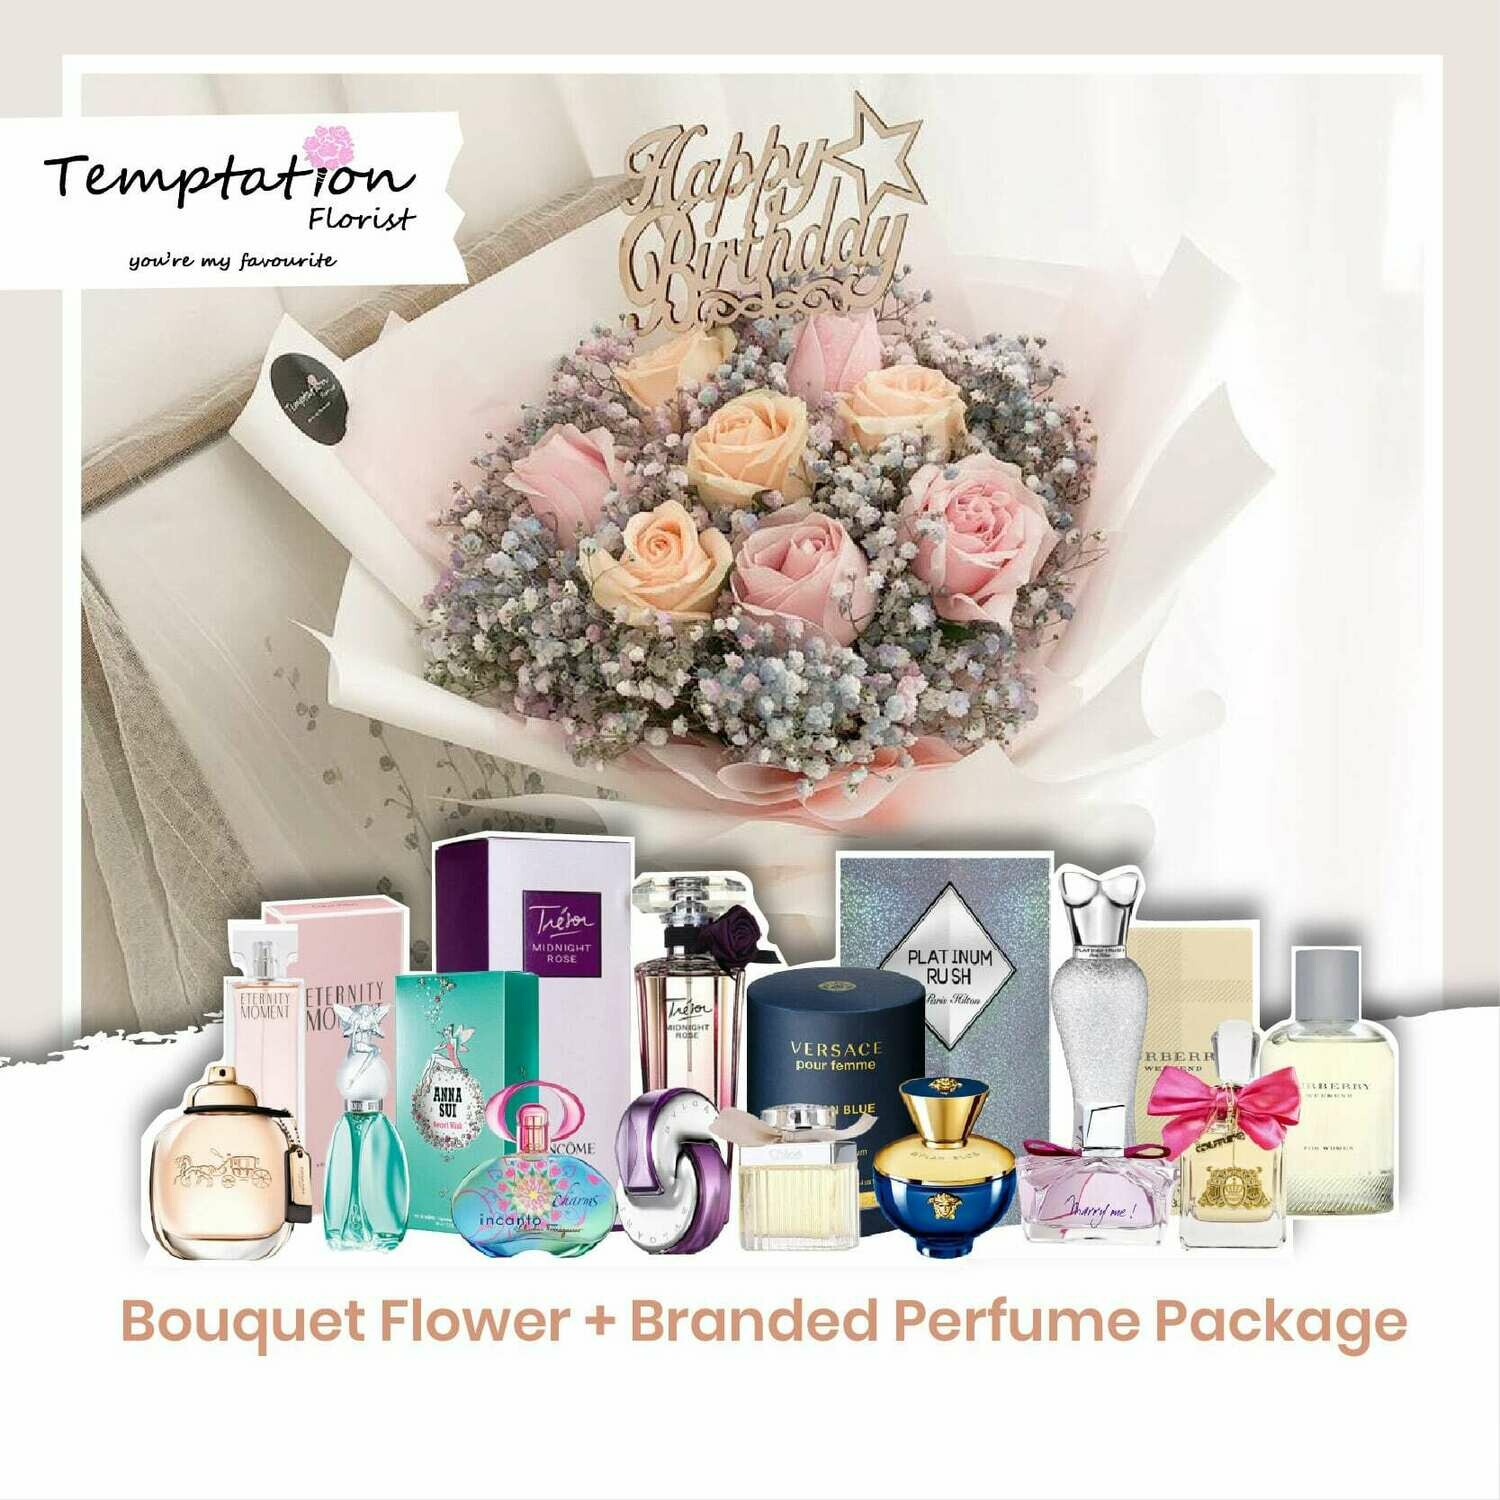 Temptation Florist Sweetheart Bouquet + Branded Perfume Package (Free Shipping! Only Deliver in Seremban)